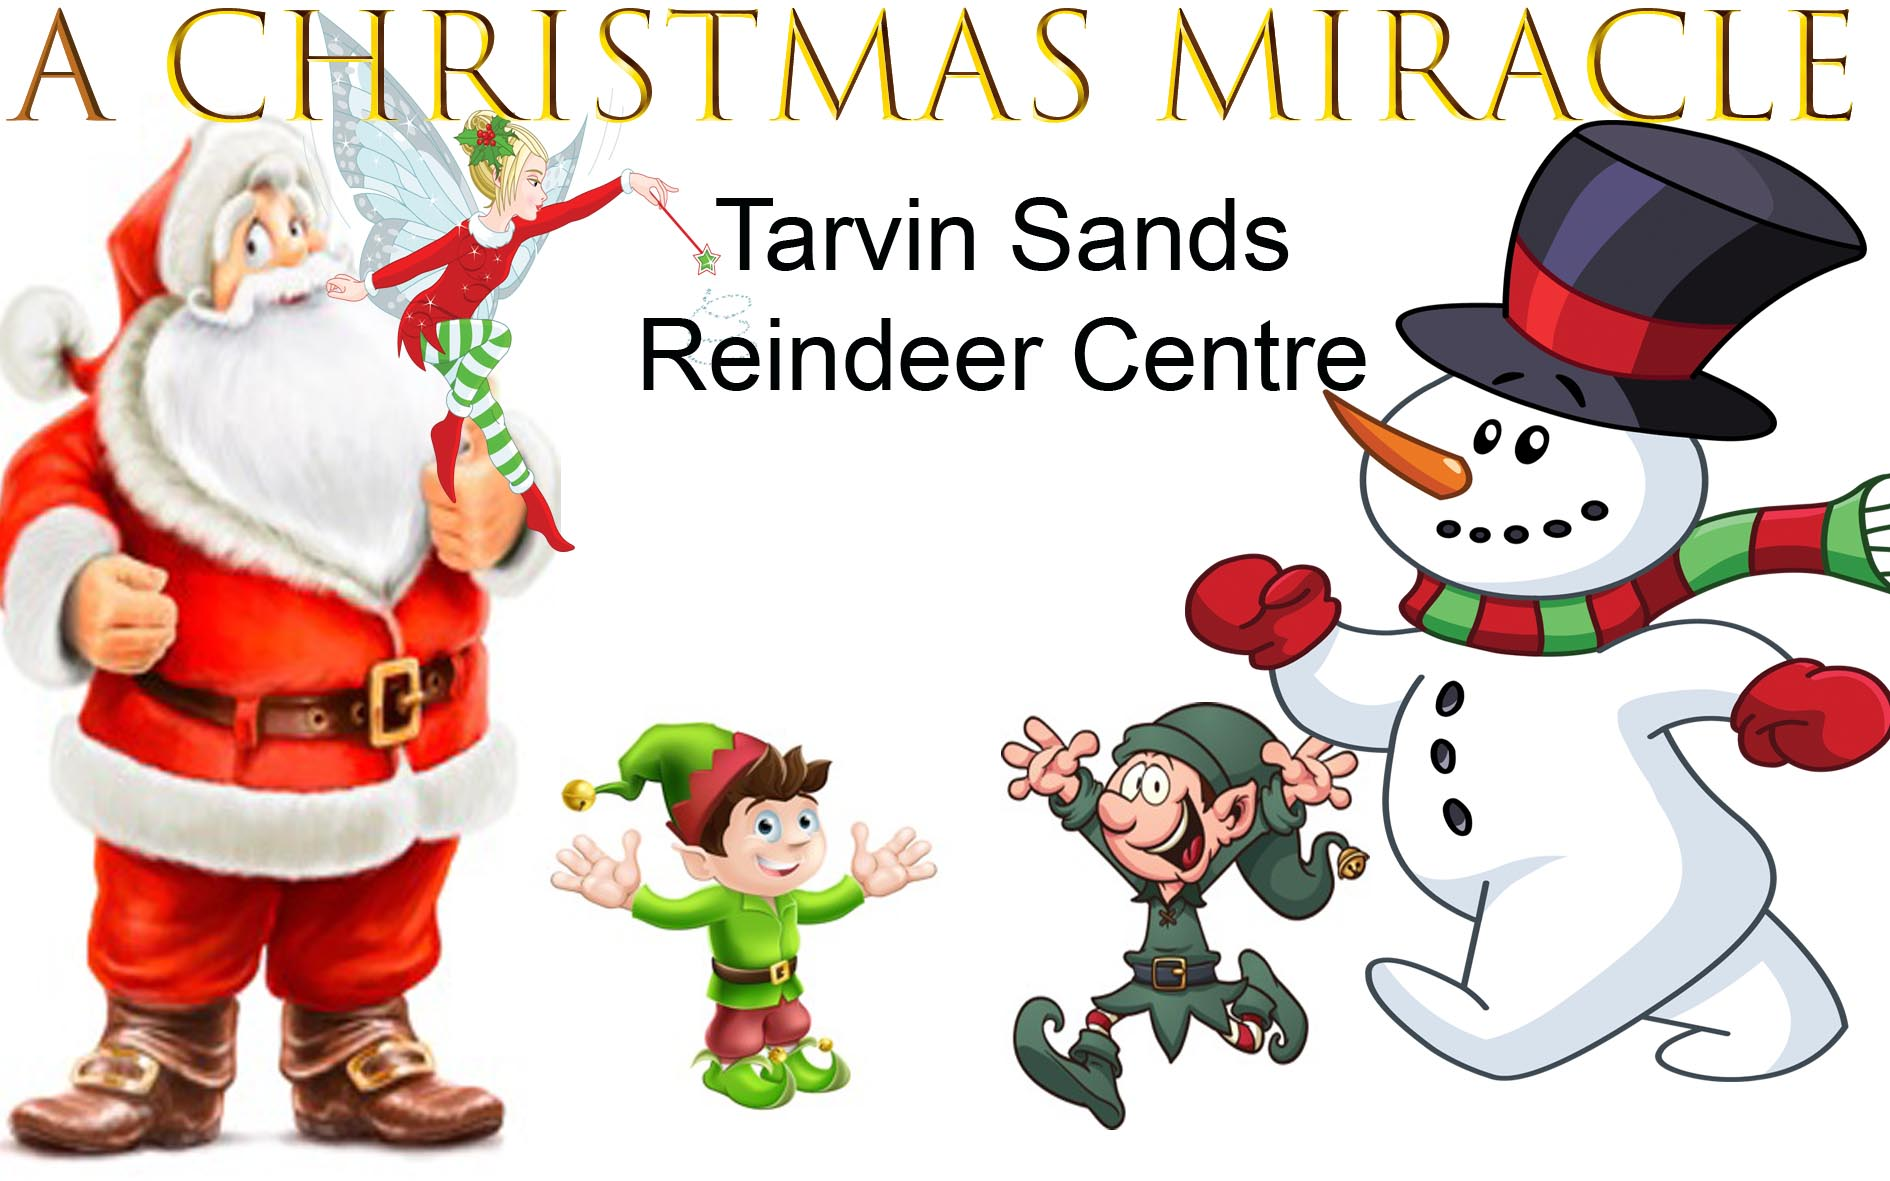 A Christmas Miracle At Tarvin Sands Fishery And Reindeer Centre